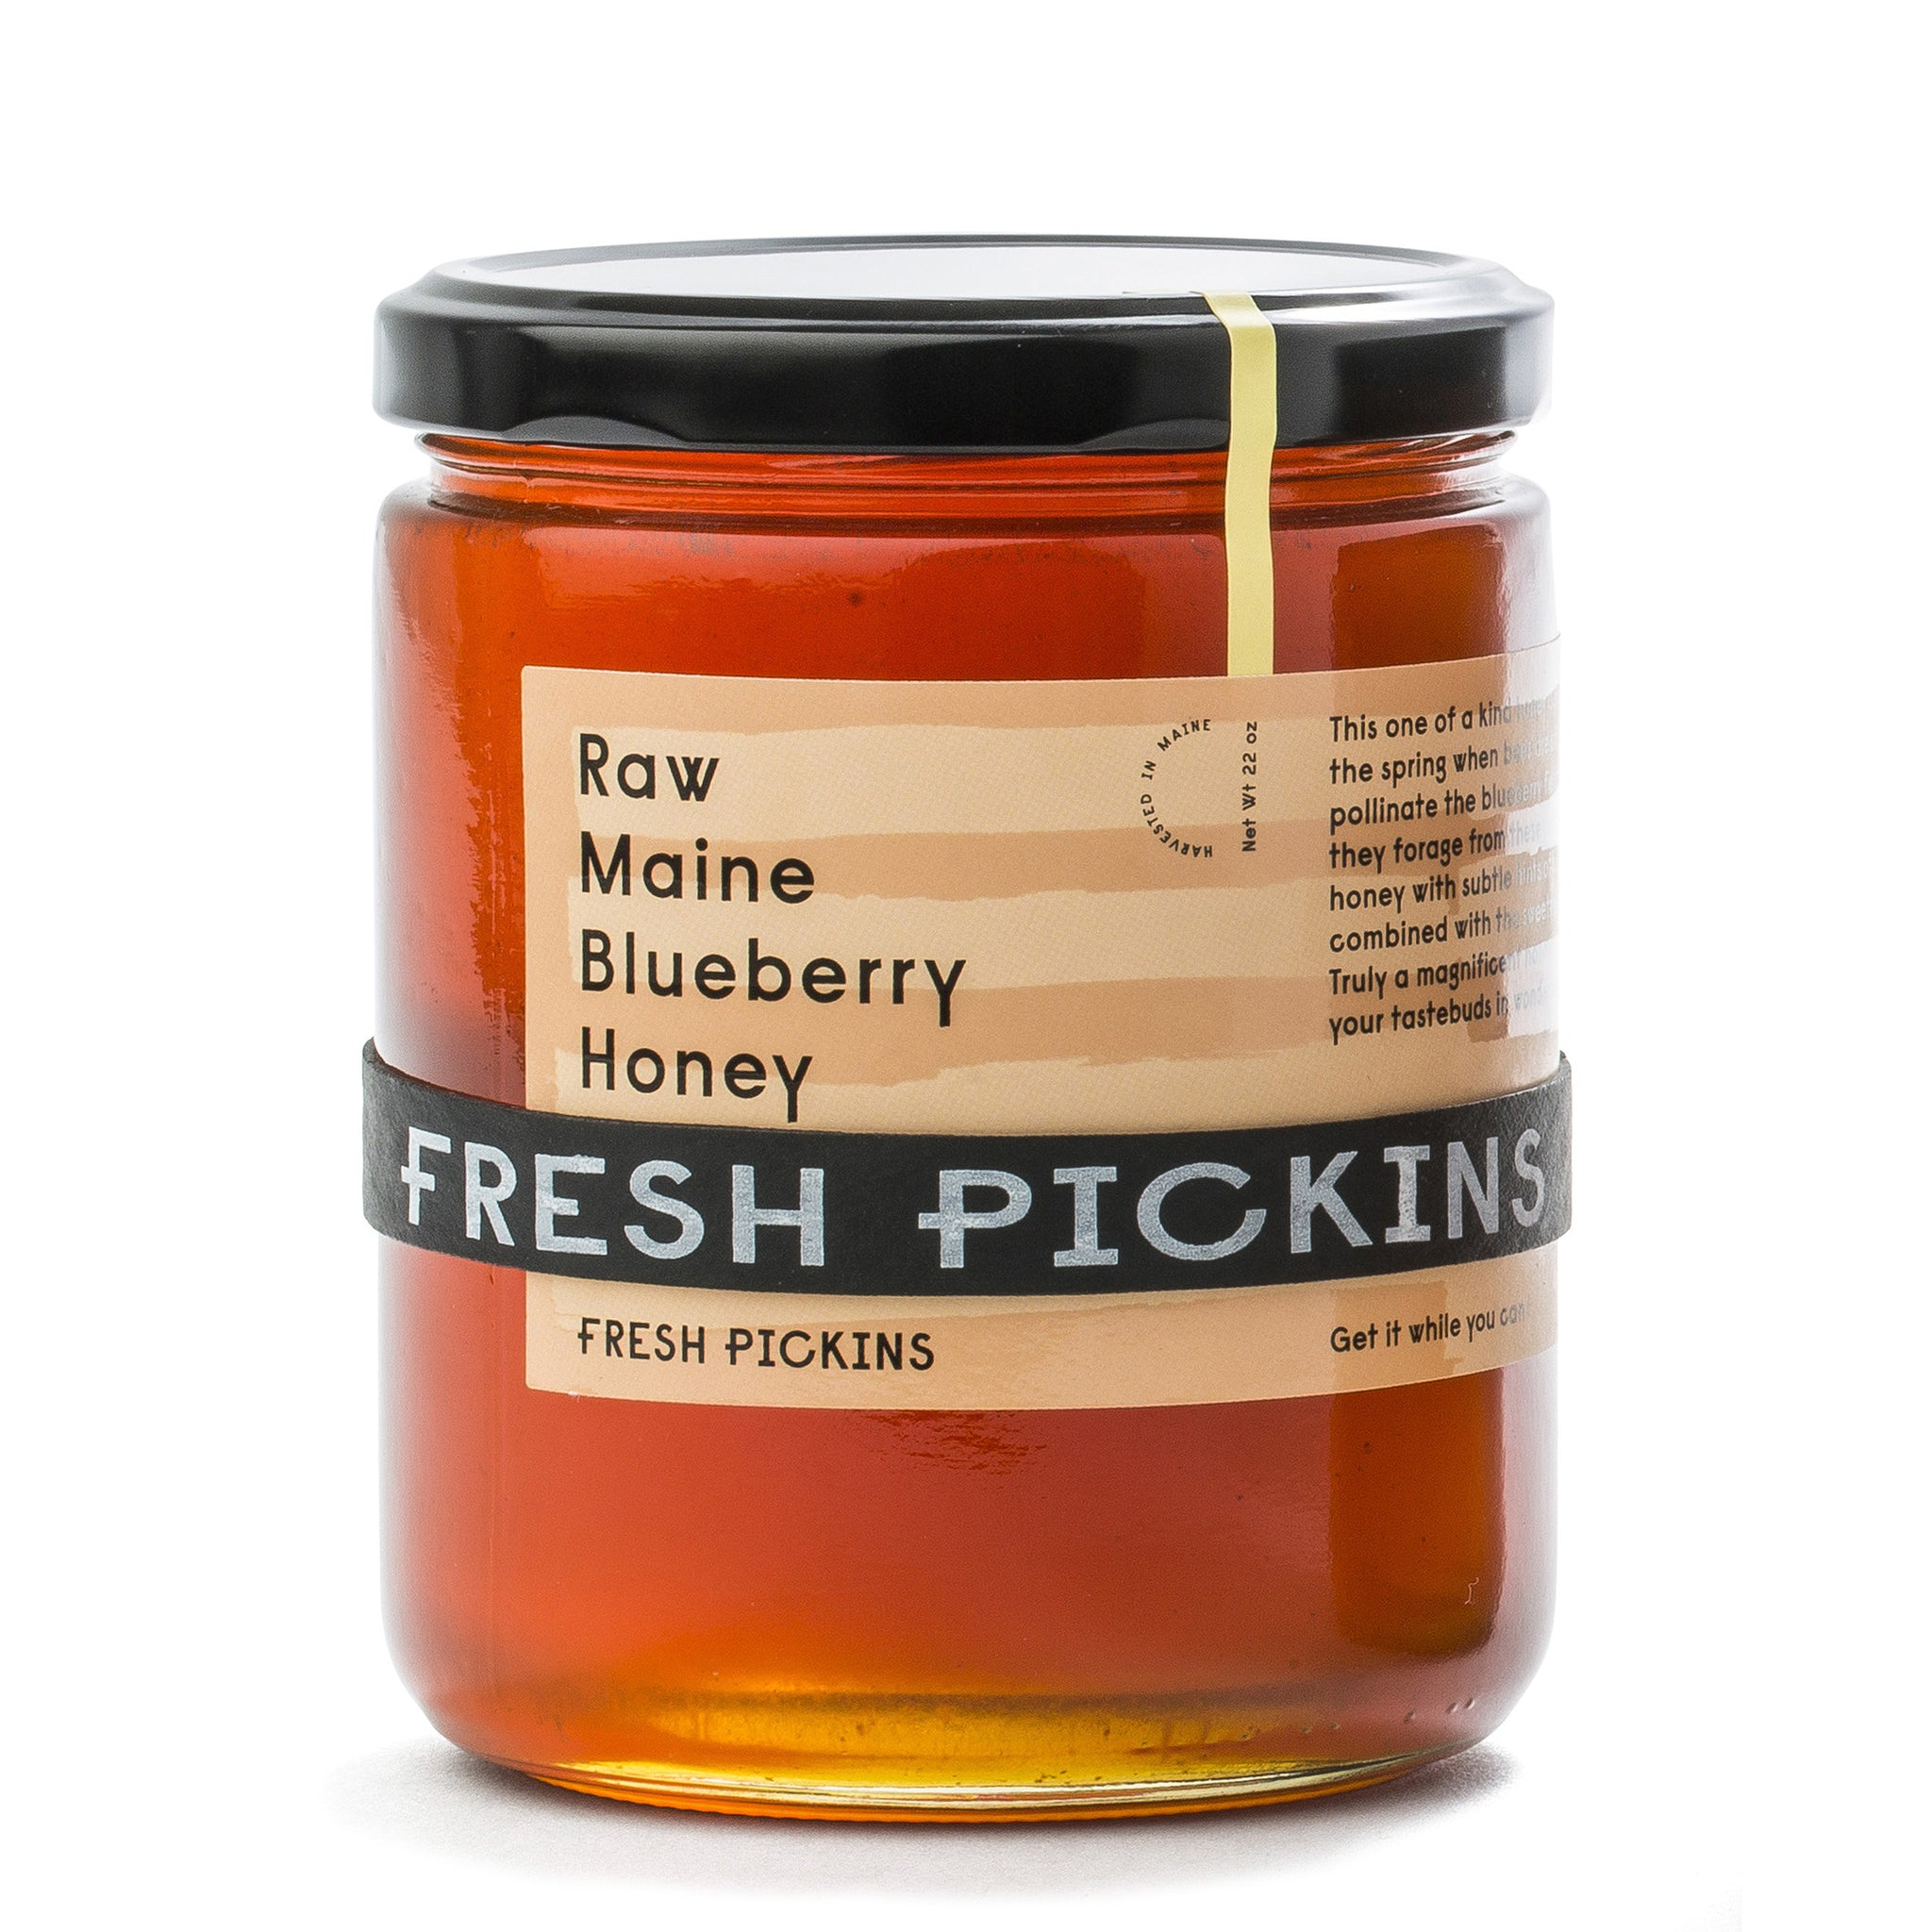 RAW MAINE BLUEBERRY HONEY (22oz)